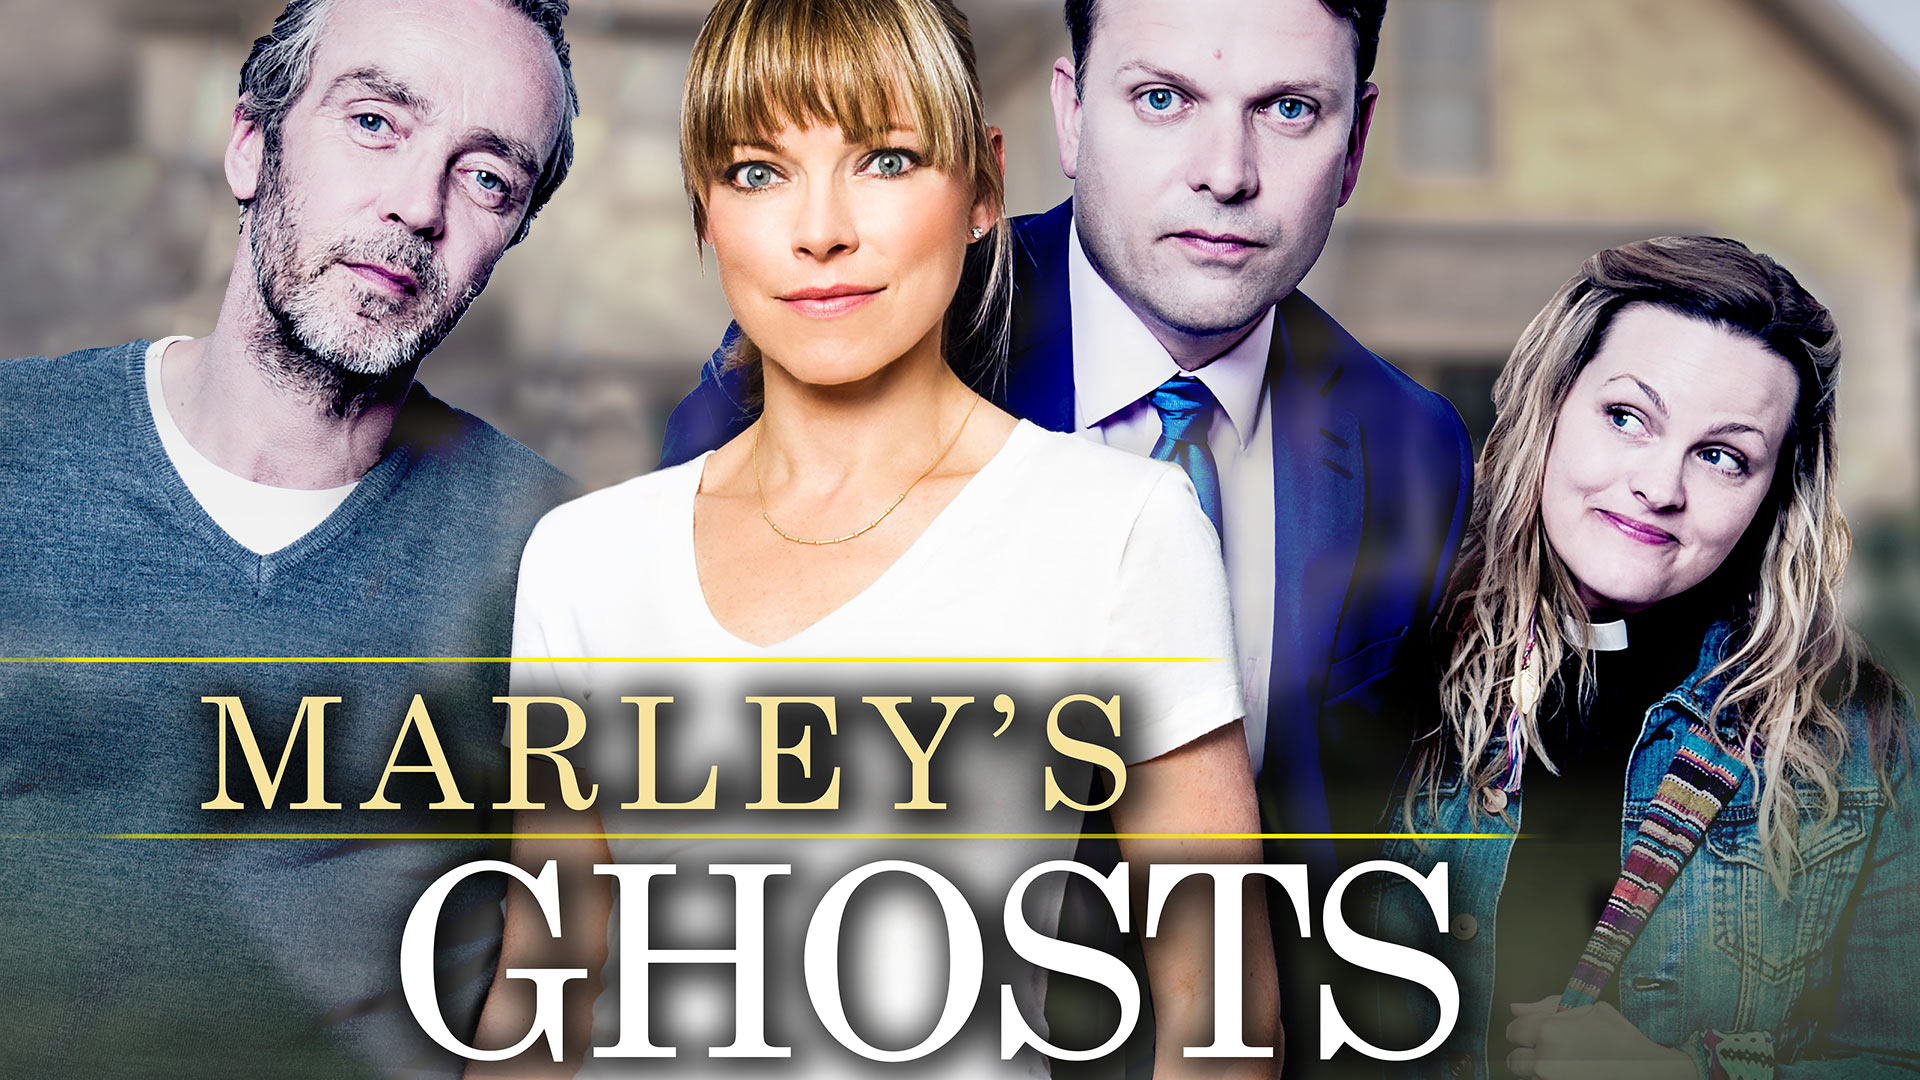 Marley's Ghosts, Season 1